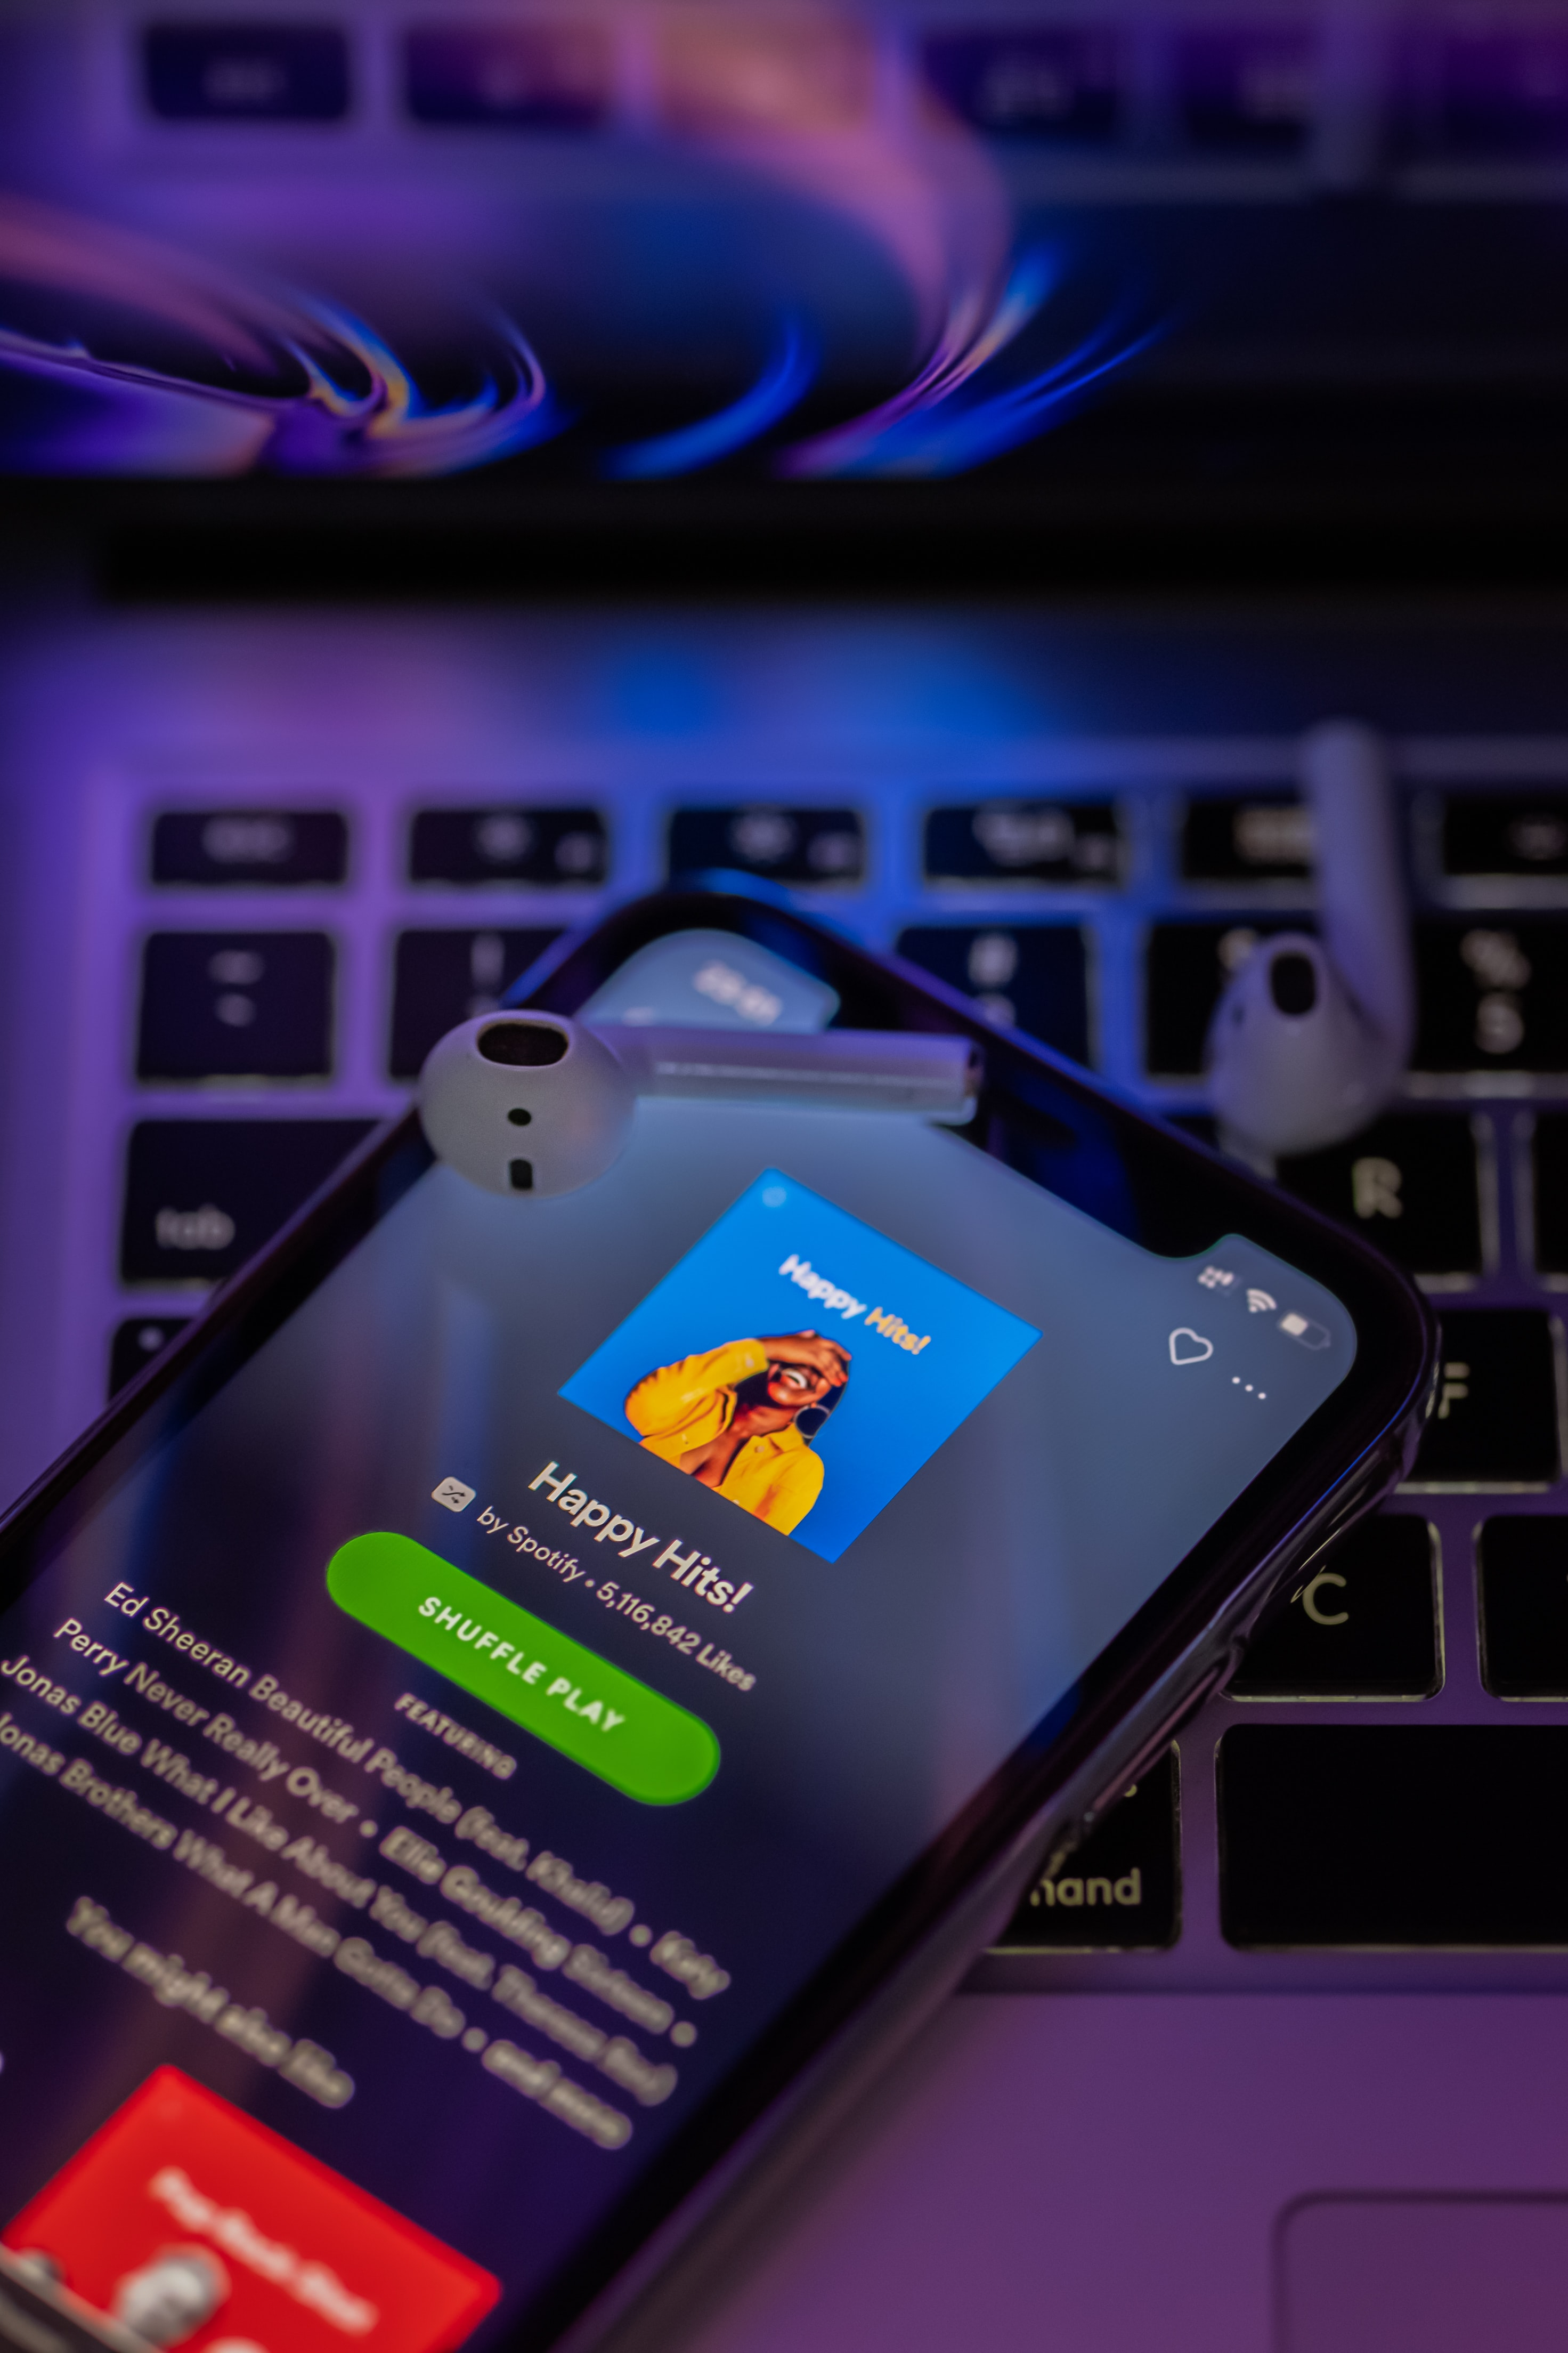 Spotify Business Model and How Spotify makes money